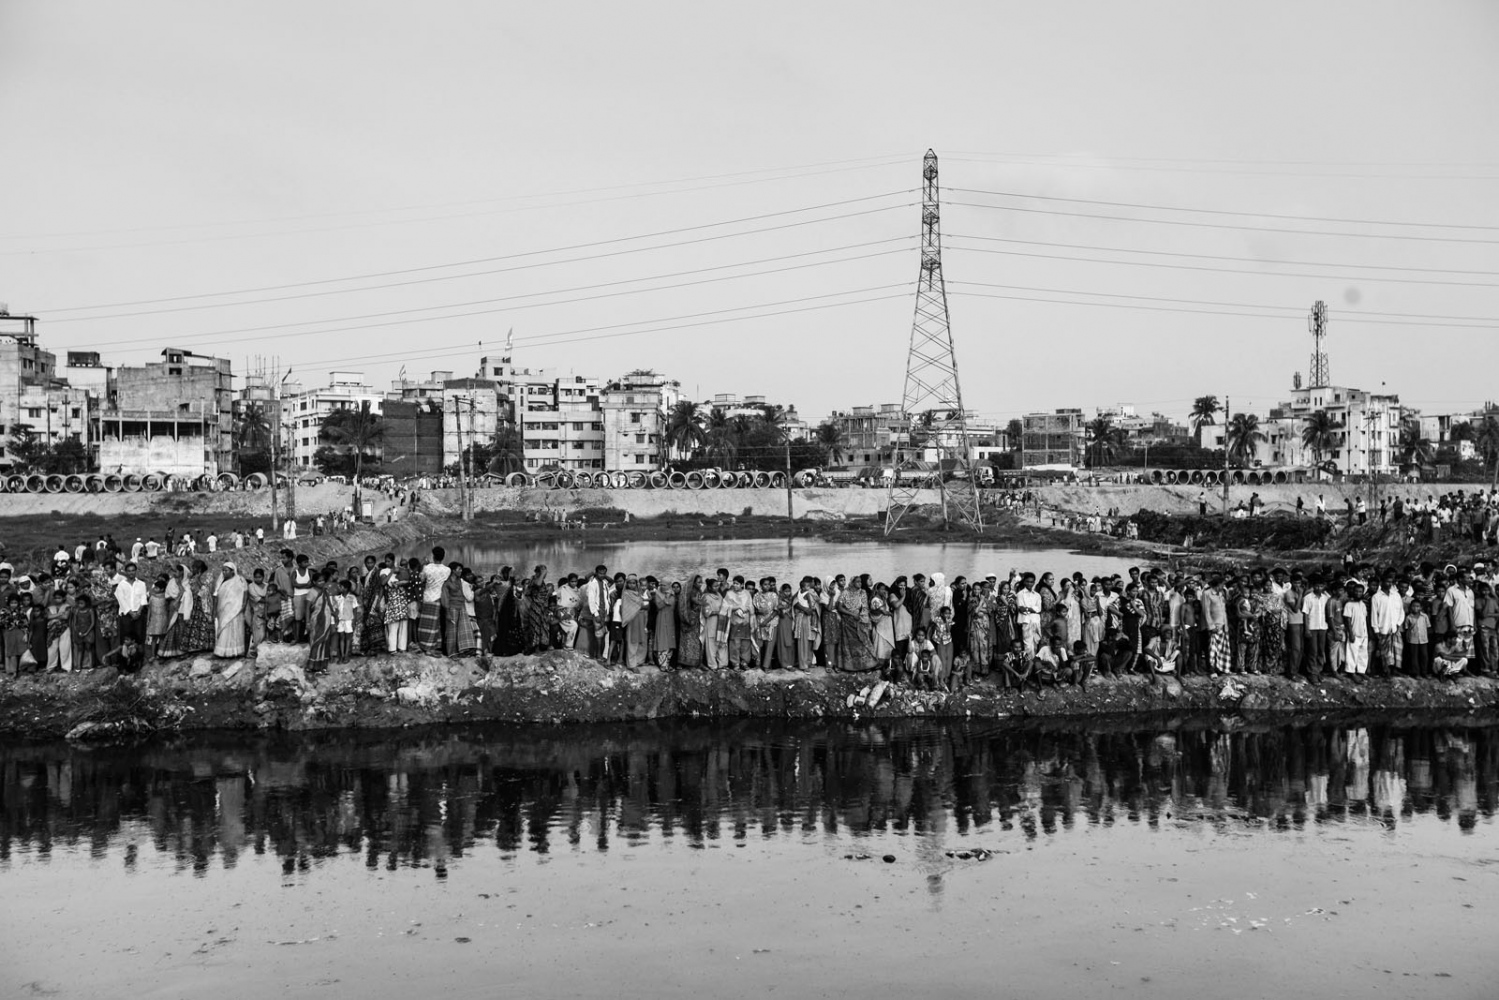 People gather at a site to watch a rescue operation, after a five-storey building collapsed off its base, in the Begunbari area in Dhaka. The building collapsed, flattening several adjacent homes and killing at least 9 people, with dozens more trapped under the rubble, police and witnesses said. At least 50 people were injured in the collapse of the building, most of them are the garment workers and their relatives. More than four million people, mostly women, work in Bangladesh's clothing sector, which is the country's largest employment generator, with annual exports worth $21 billion.